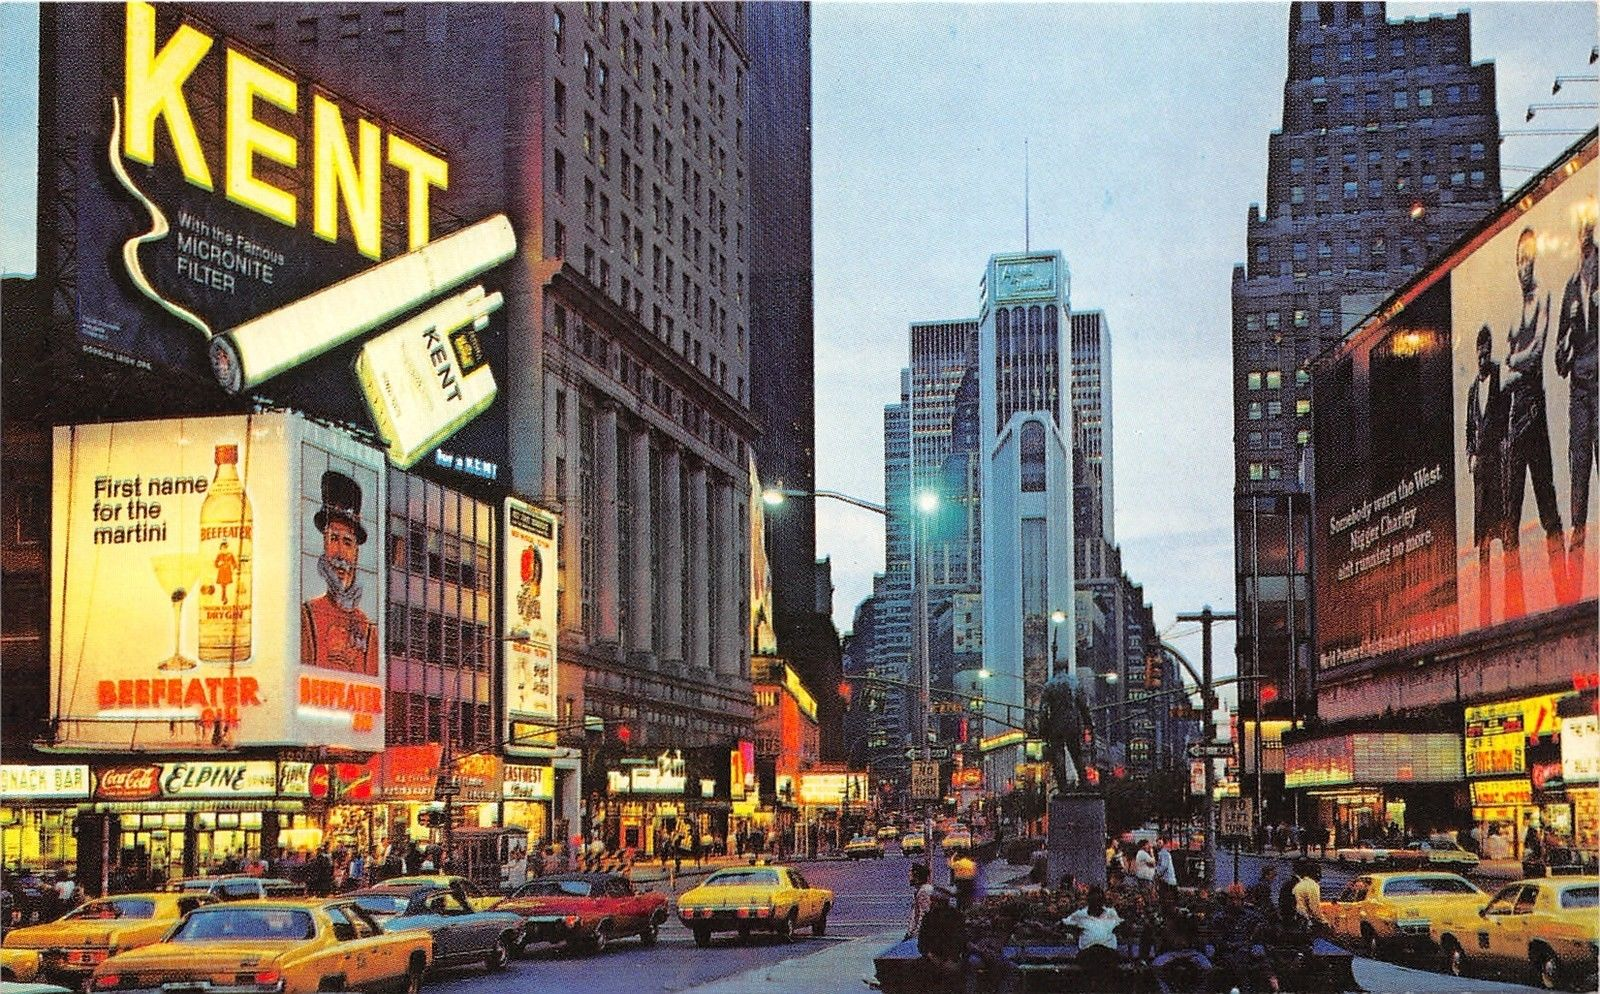 New York City~Times Square @ Night~Beefeater Martini~Kent